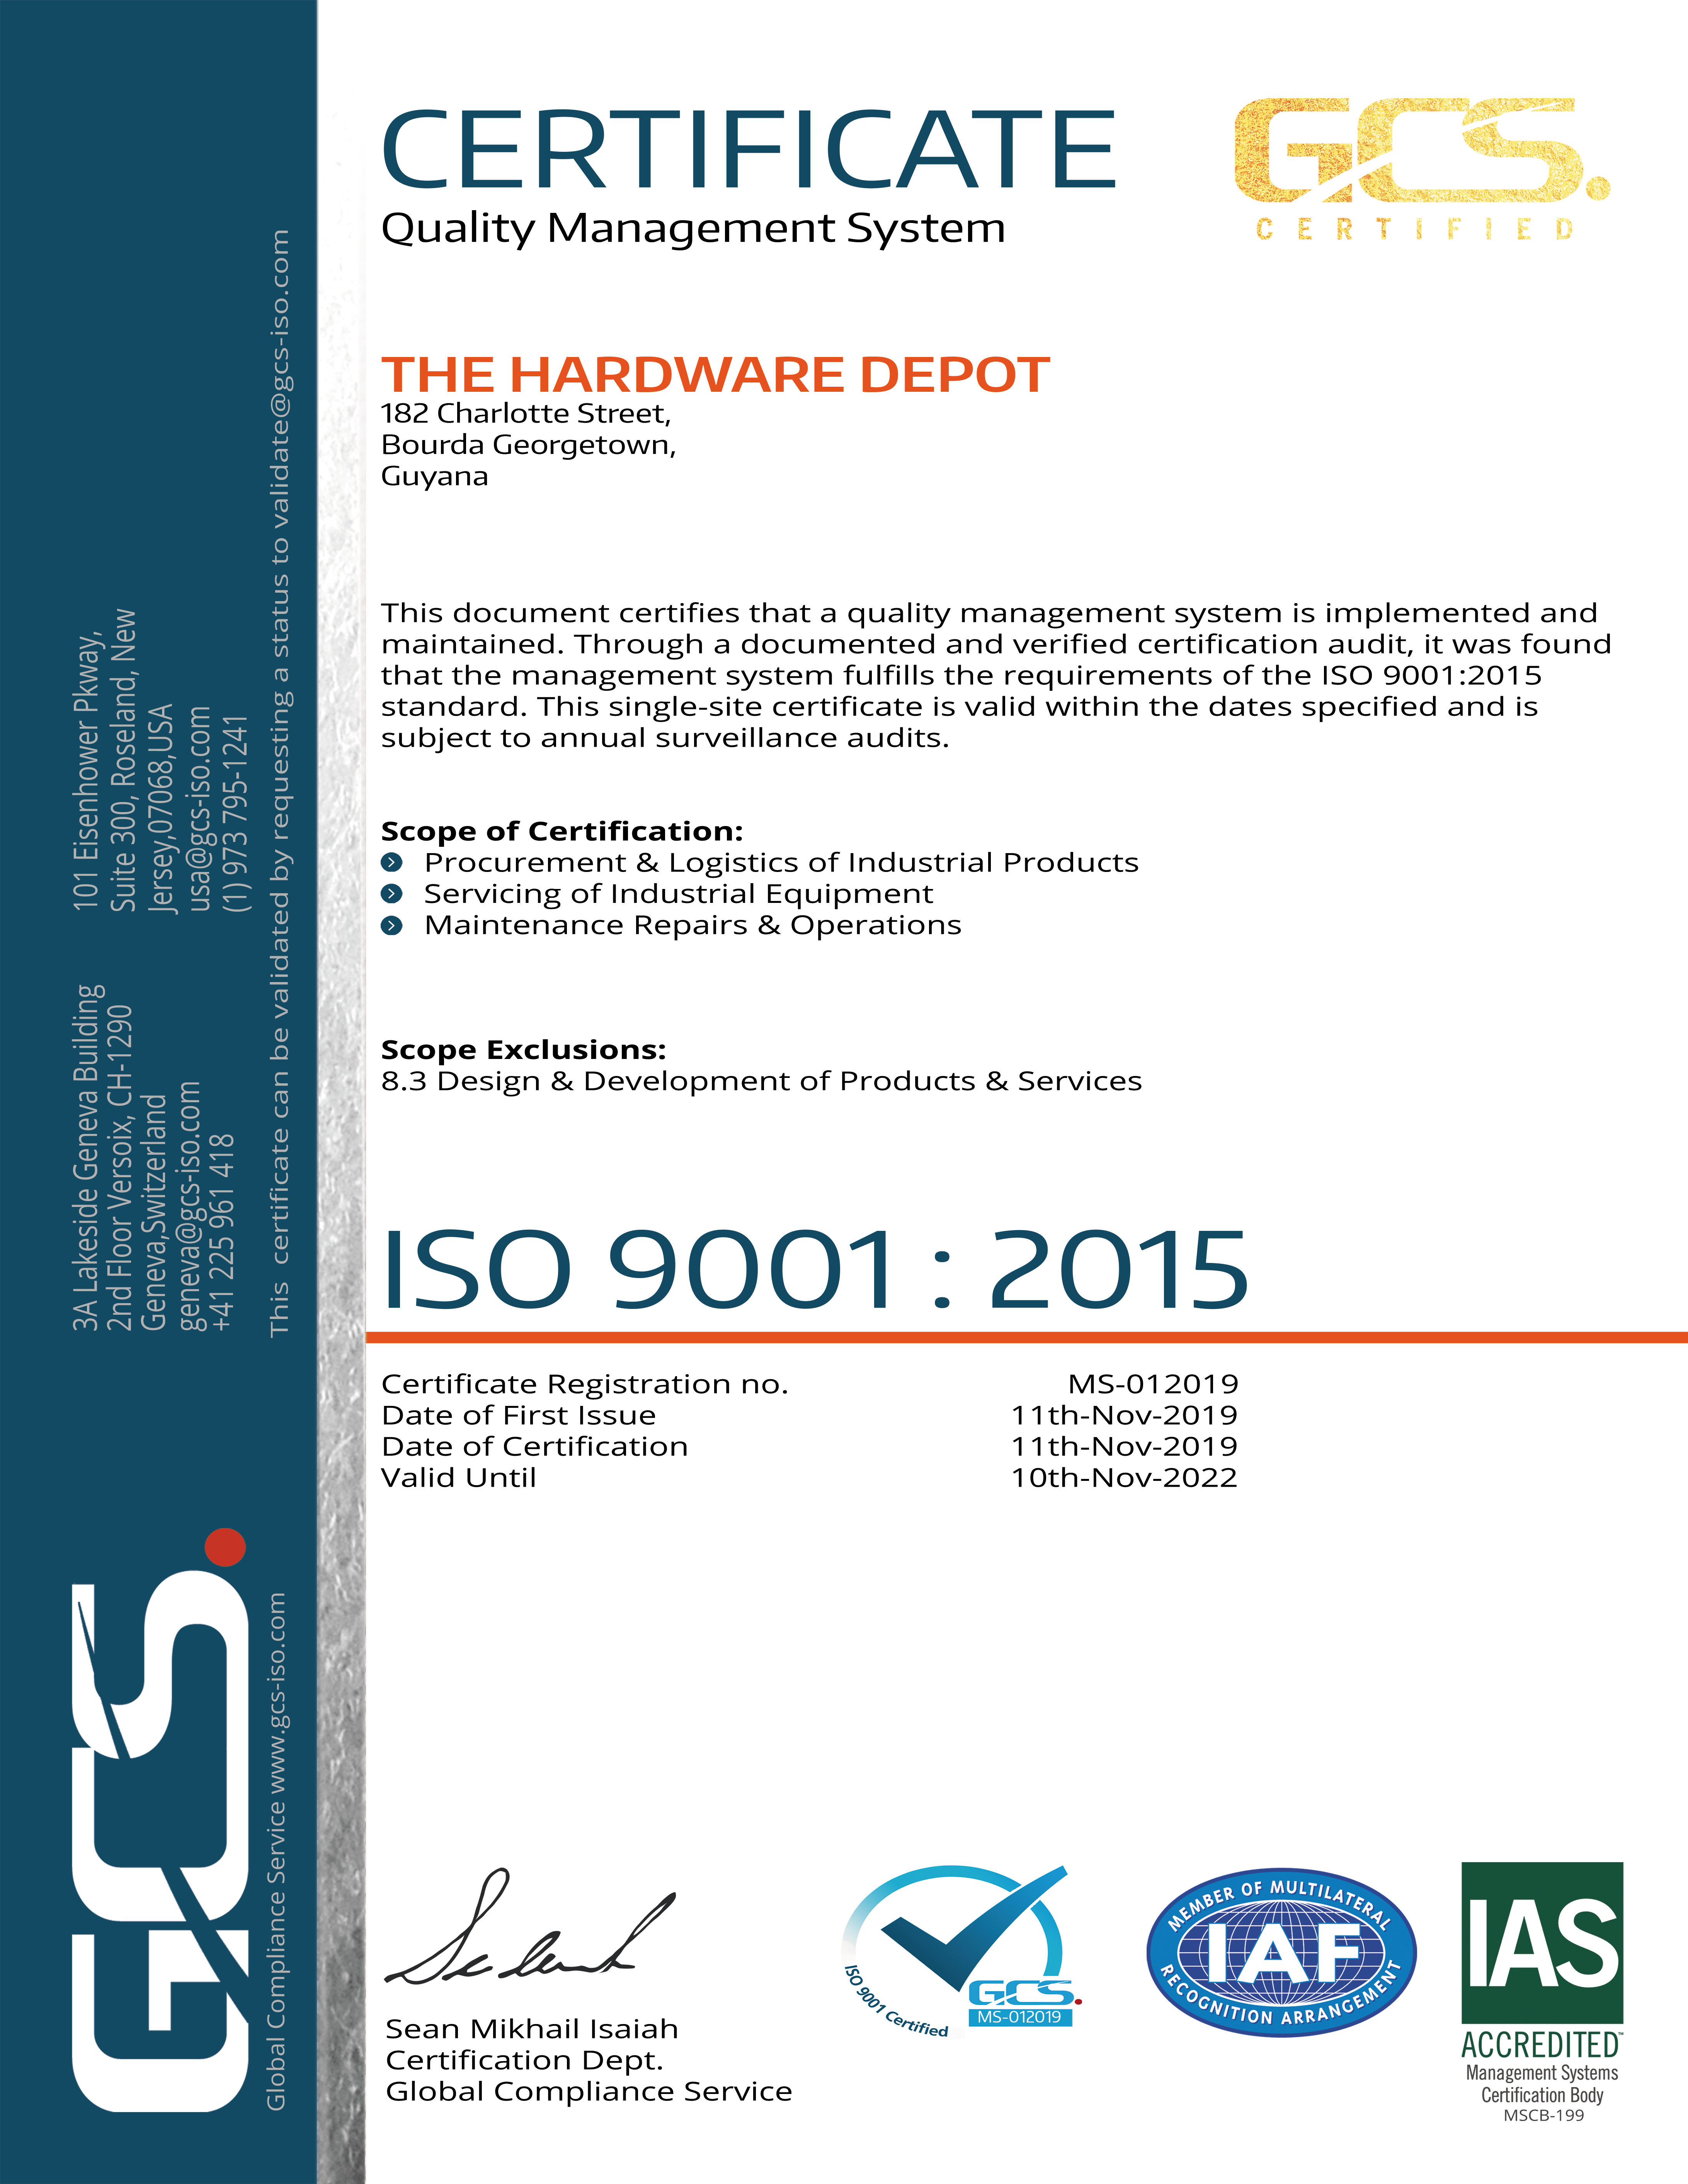 the-hardware-depot-iso-9001-certificate.png